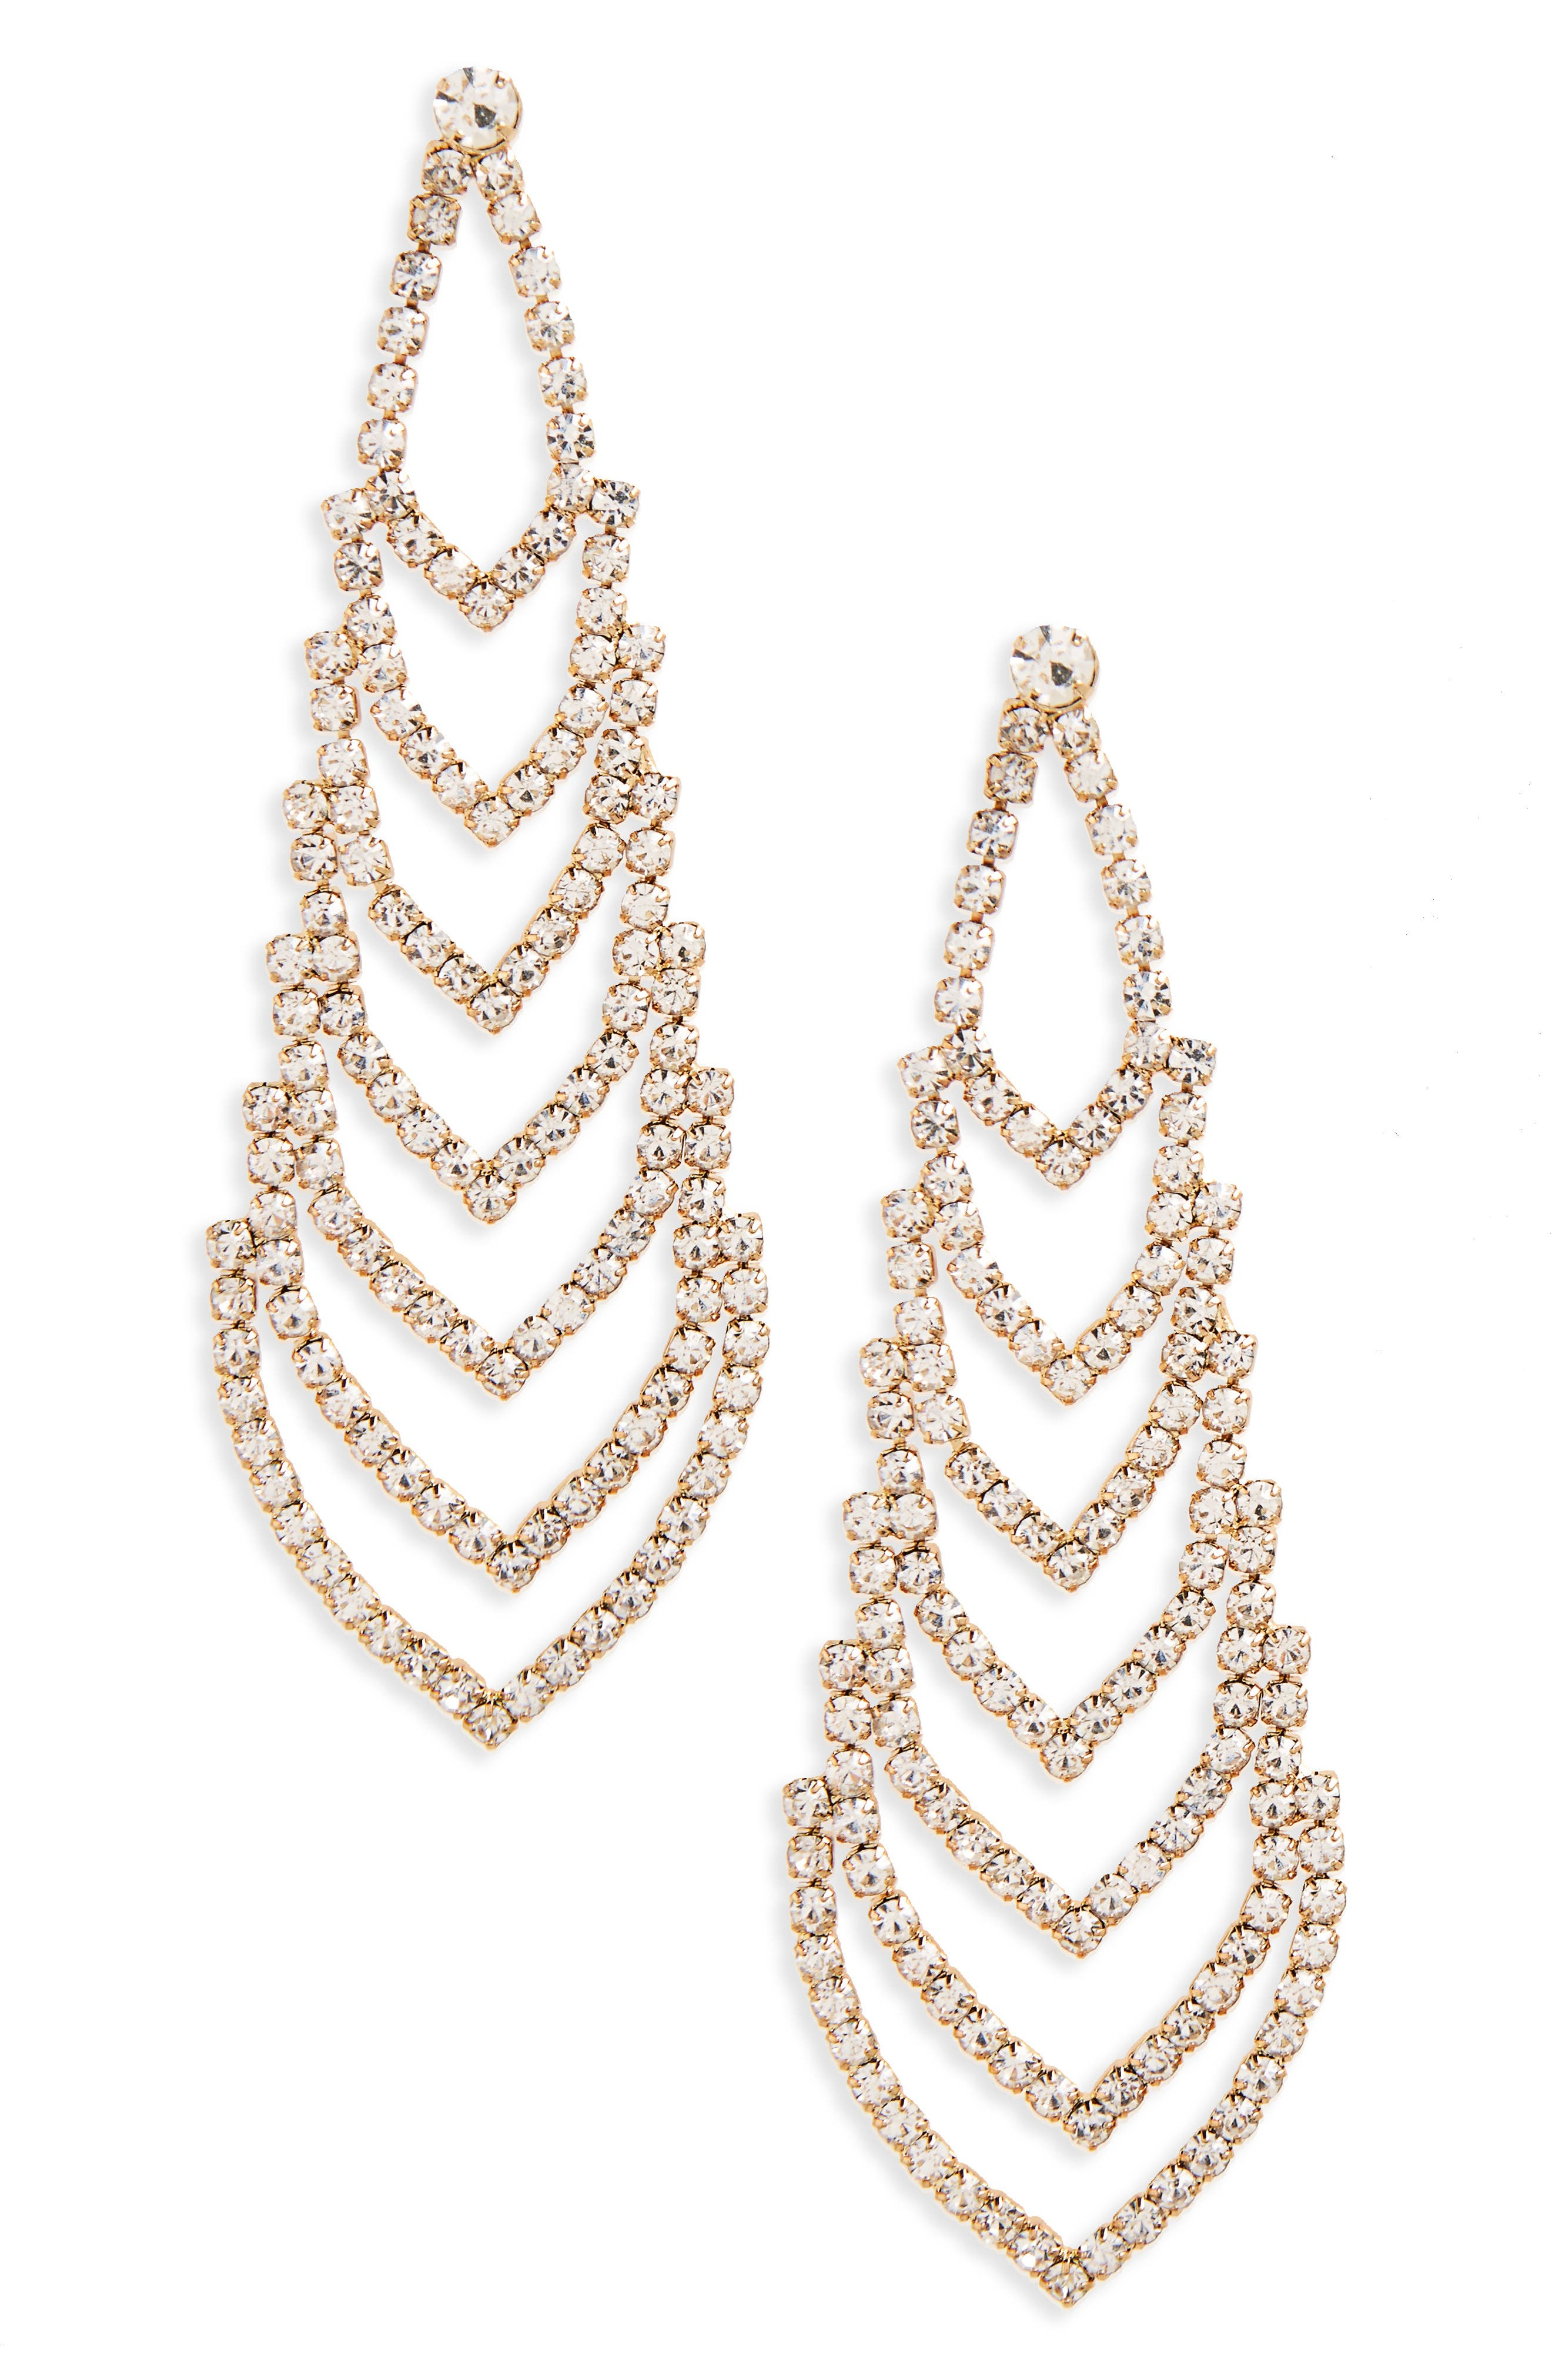 Crystal Chandelier Earrings,                             Main thumbnail 1, color,                             716